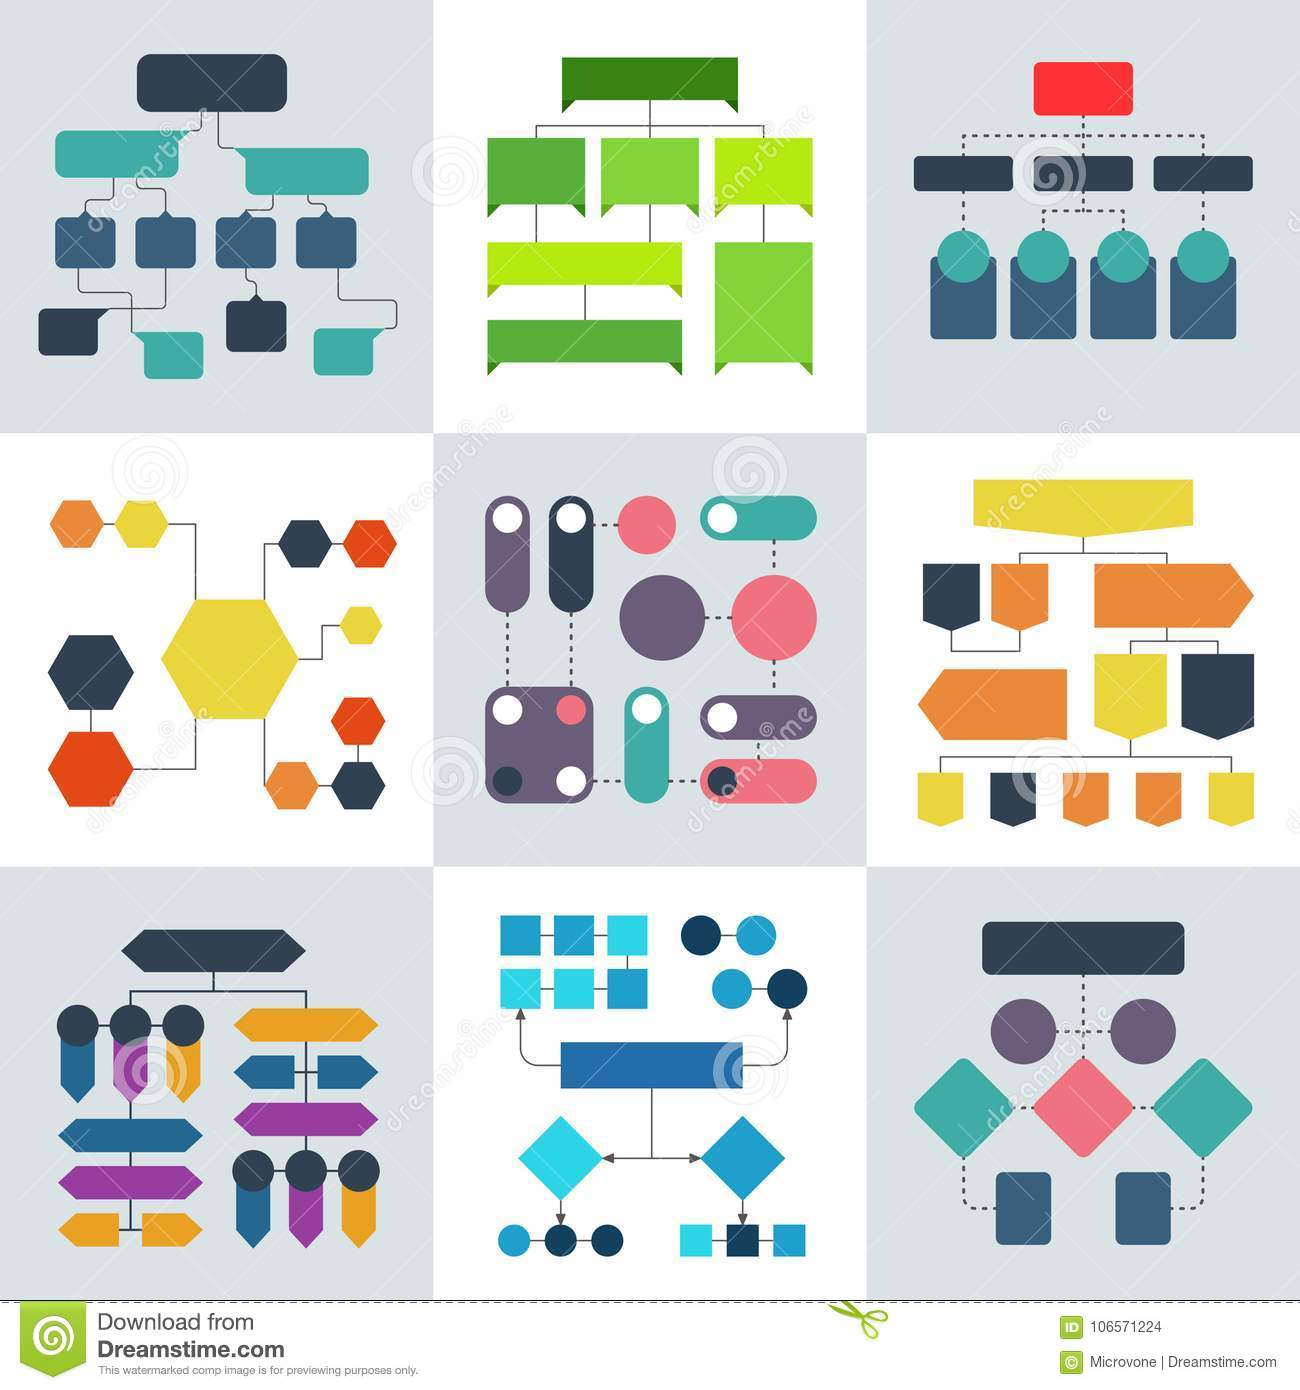 structural flow diagrams, flowcharts and flowing process structures  vector  infographics elements structure process, diagram and flowchart illustration